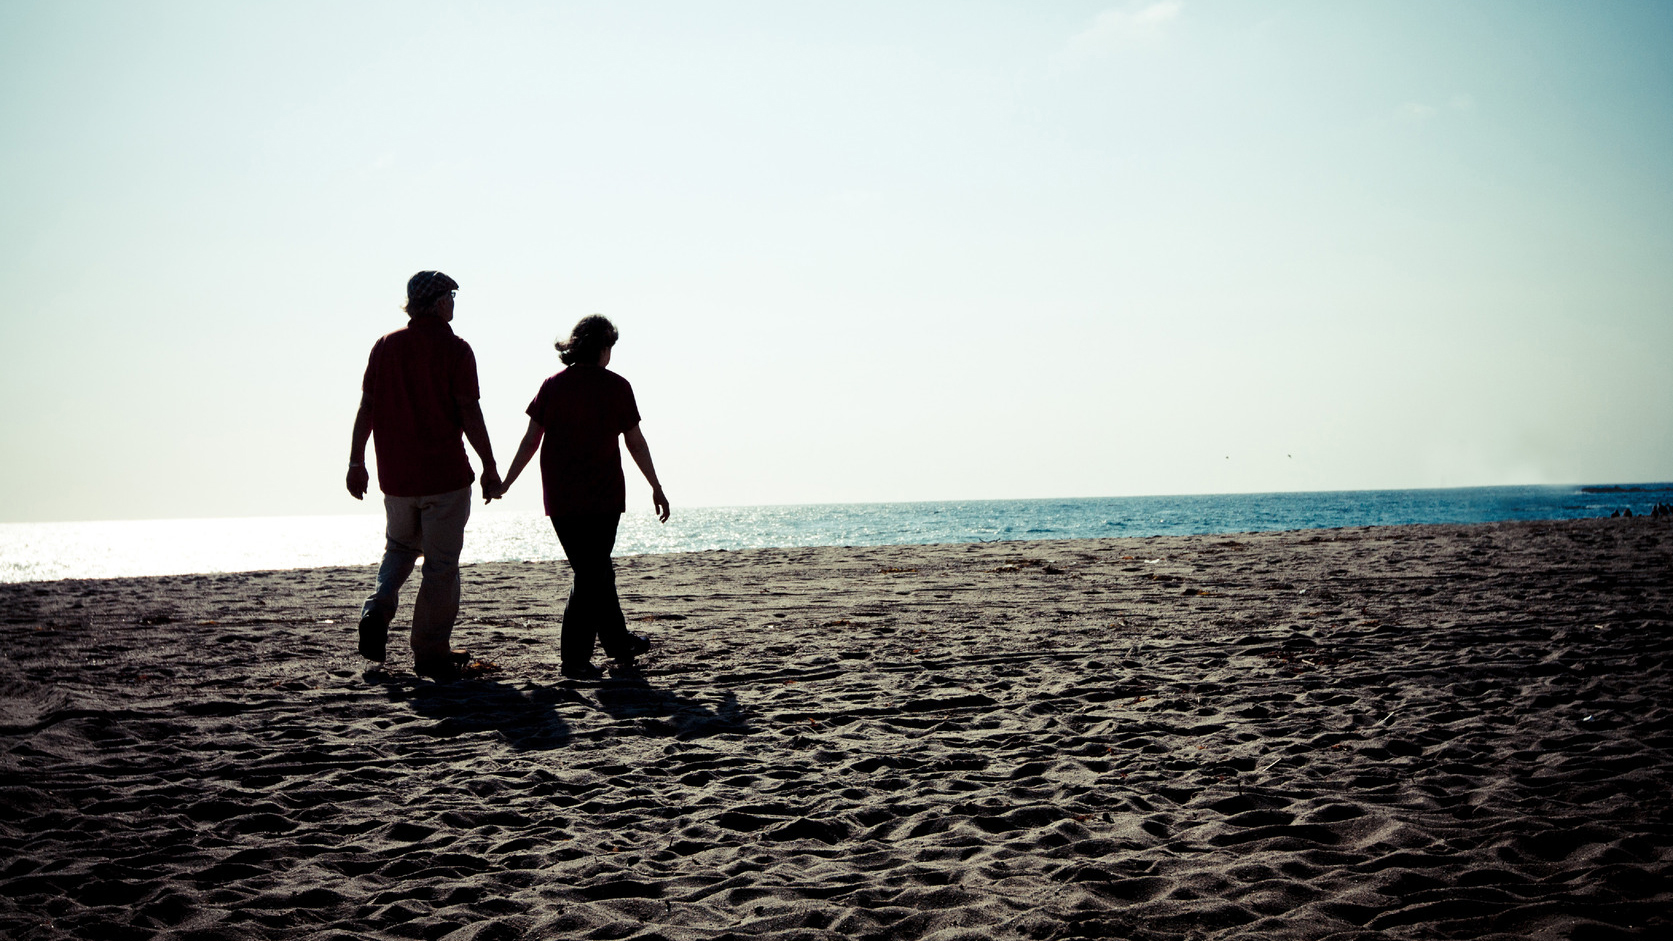 Photodune-2880365-couple-walking-on-beach-m-crop